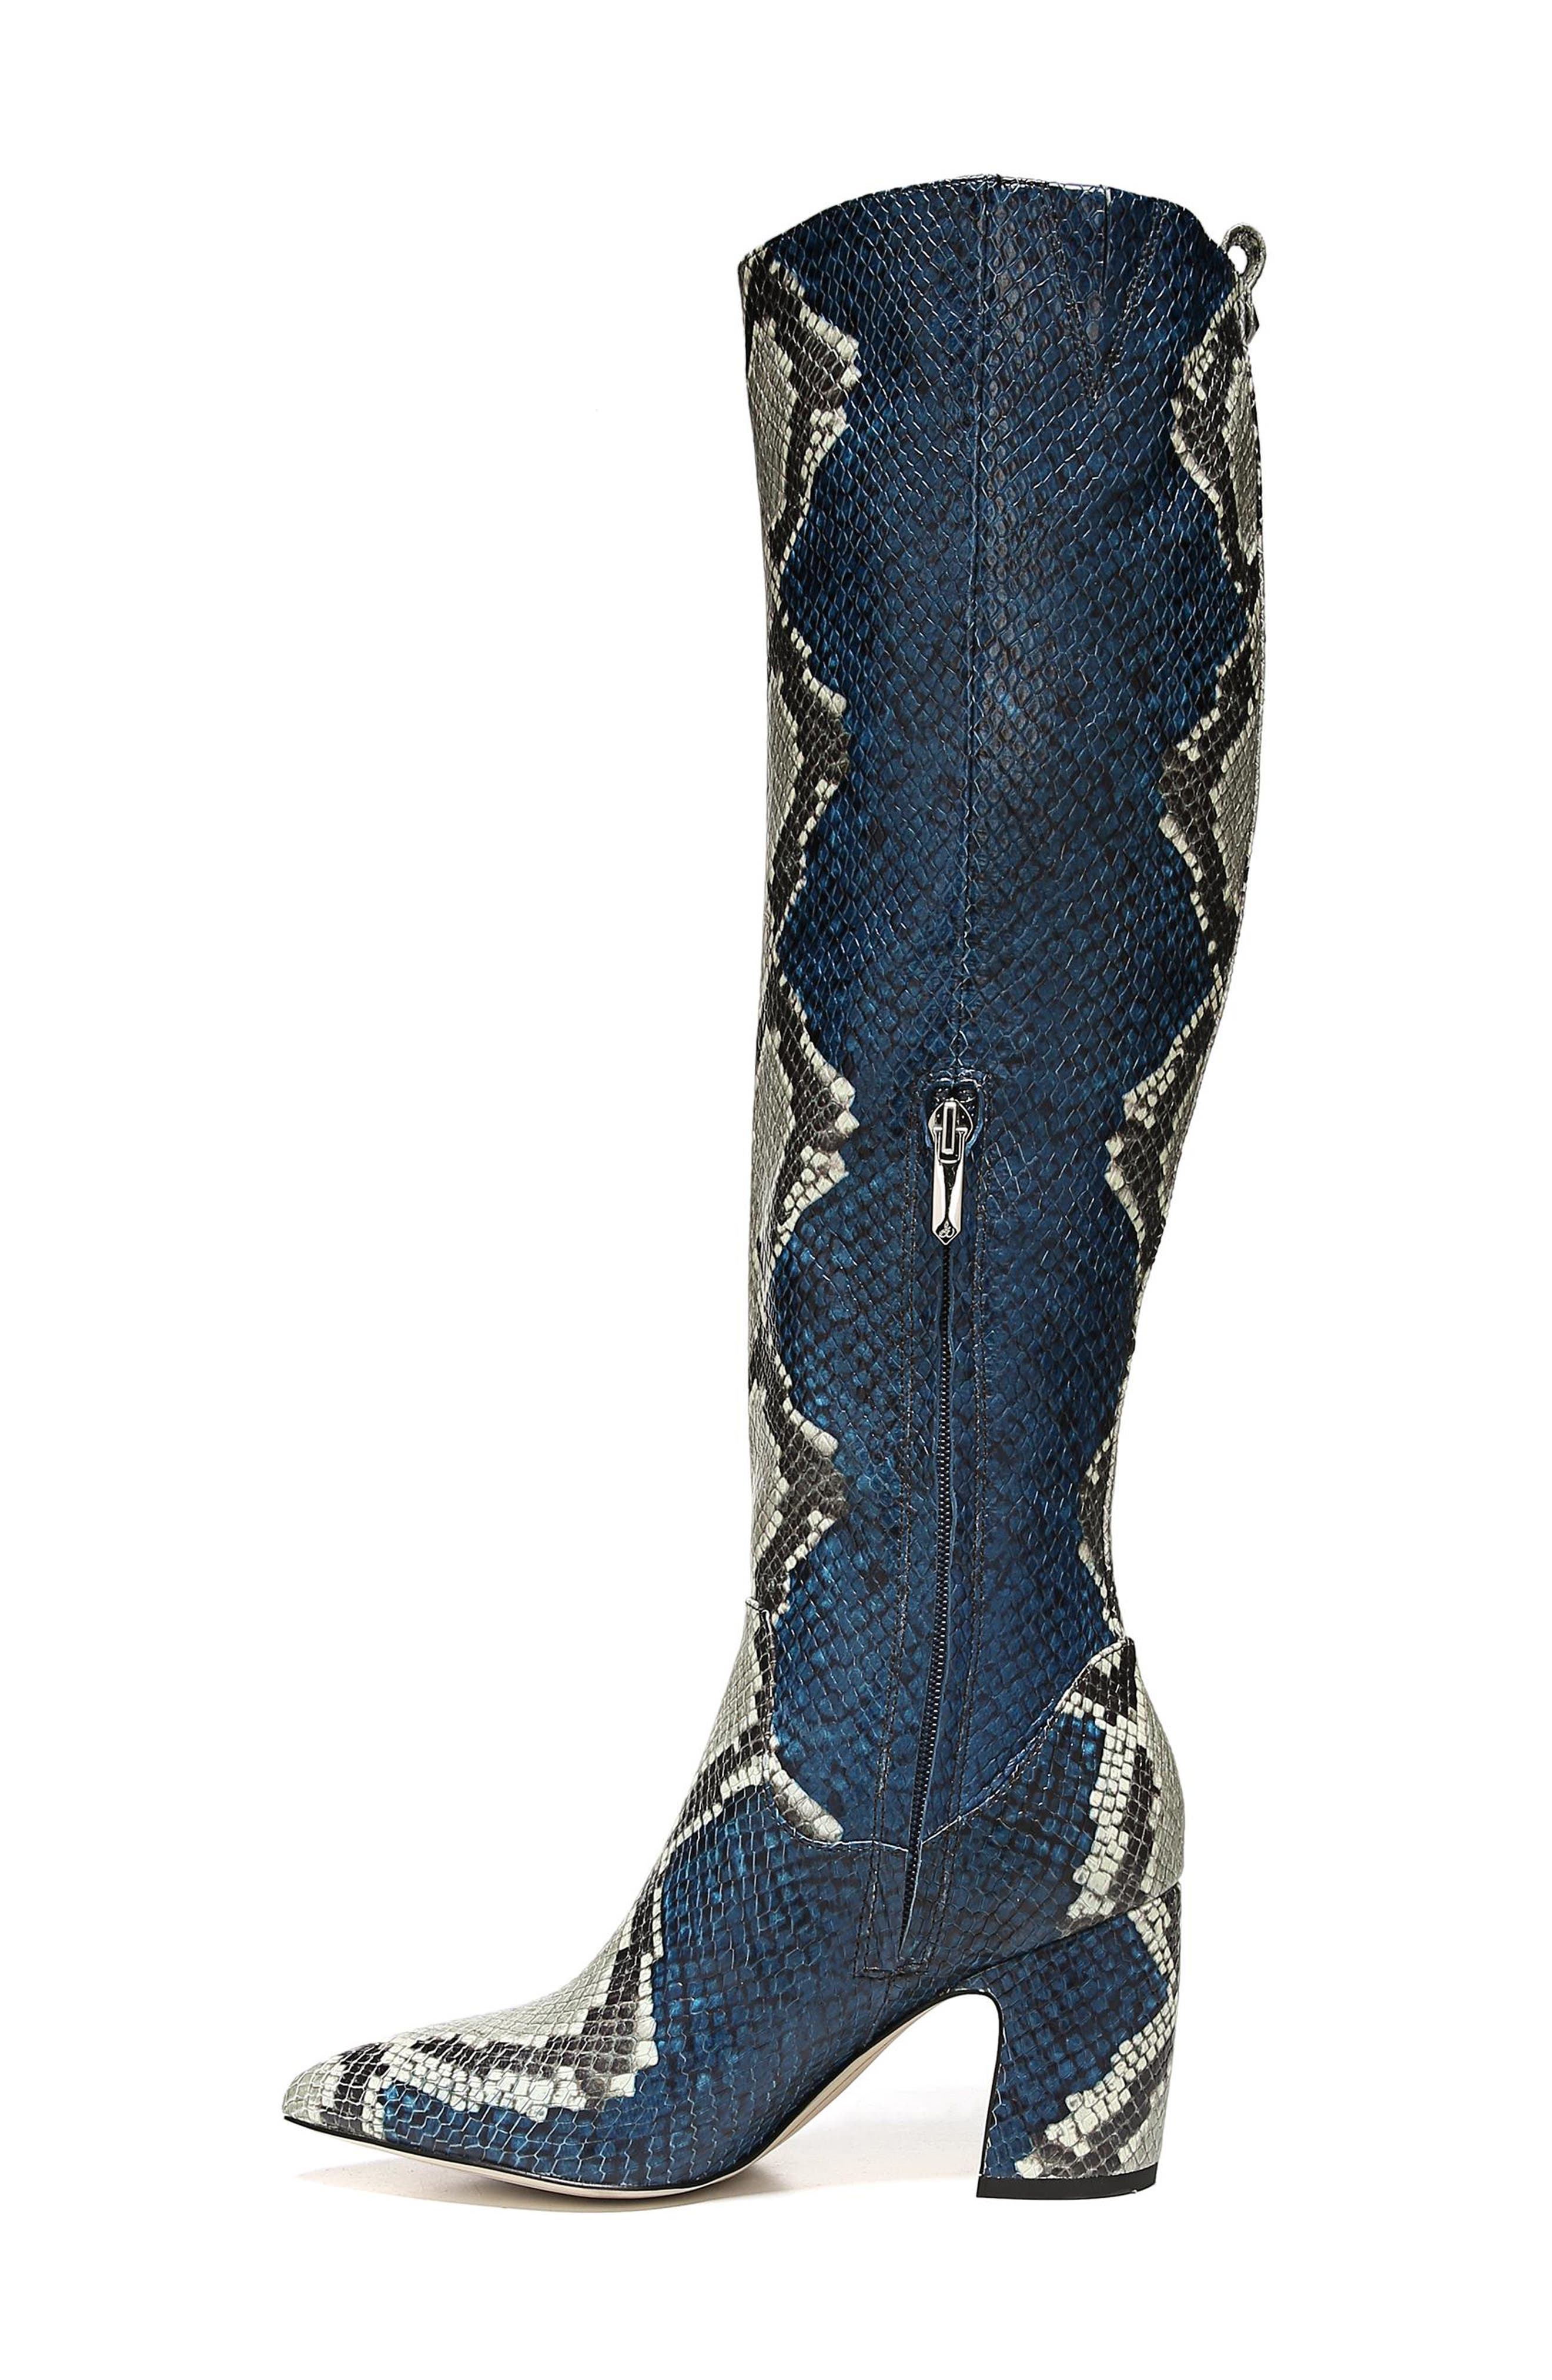 Hai Knee High Boot,                             Alternate thumbnail 9, color,                             PEACOCK EMBOSSED LEATHER